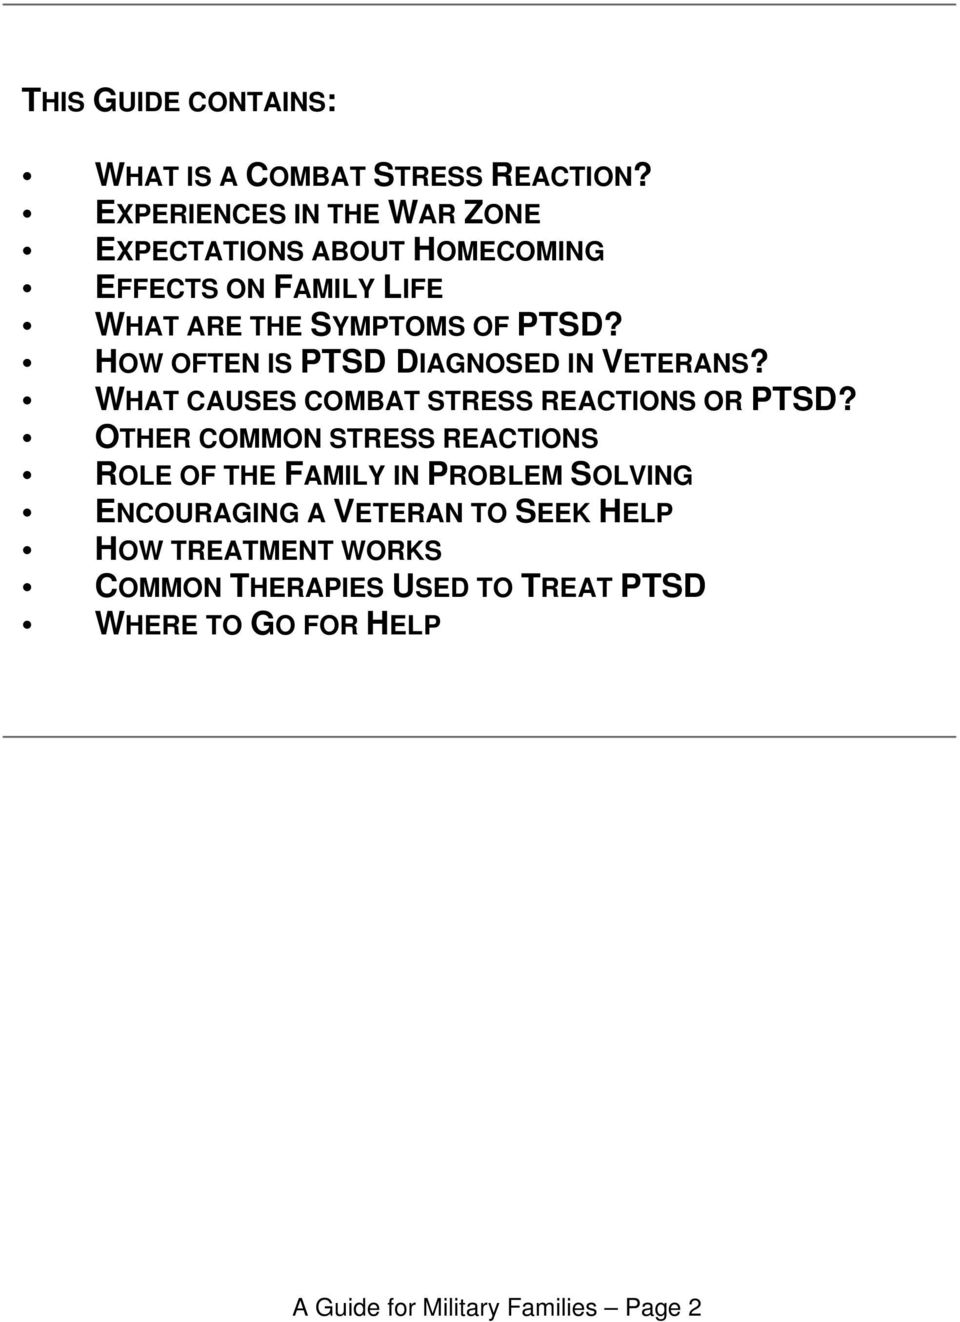 HOW OFTEN IS PTSD DIAGNOSED IN VETERANS? WHAT CAUSES COMBAT STRESS REACTIONS OR PTSD?